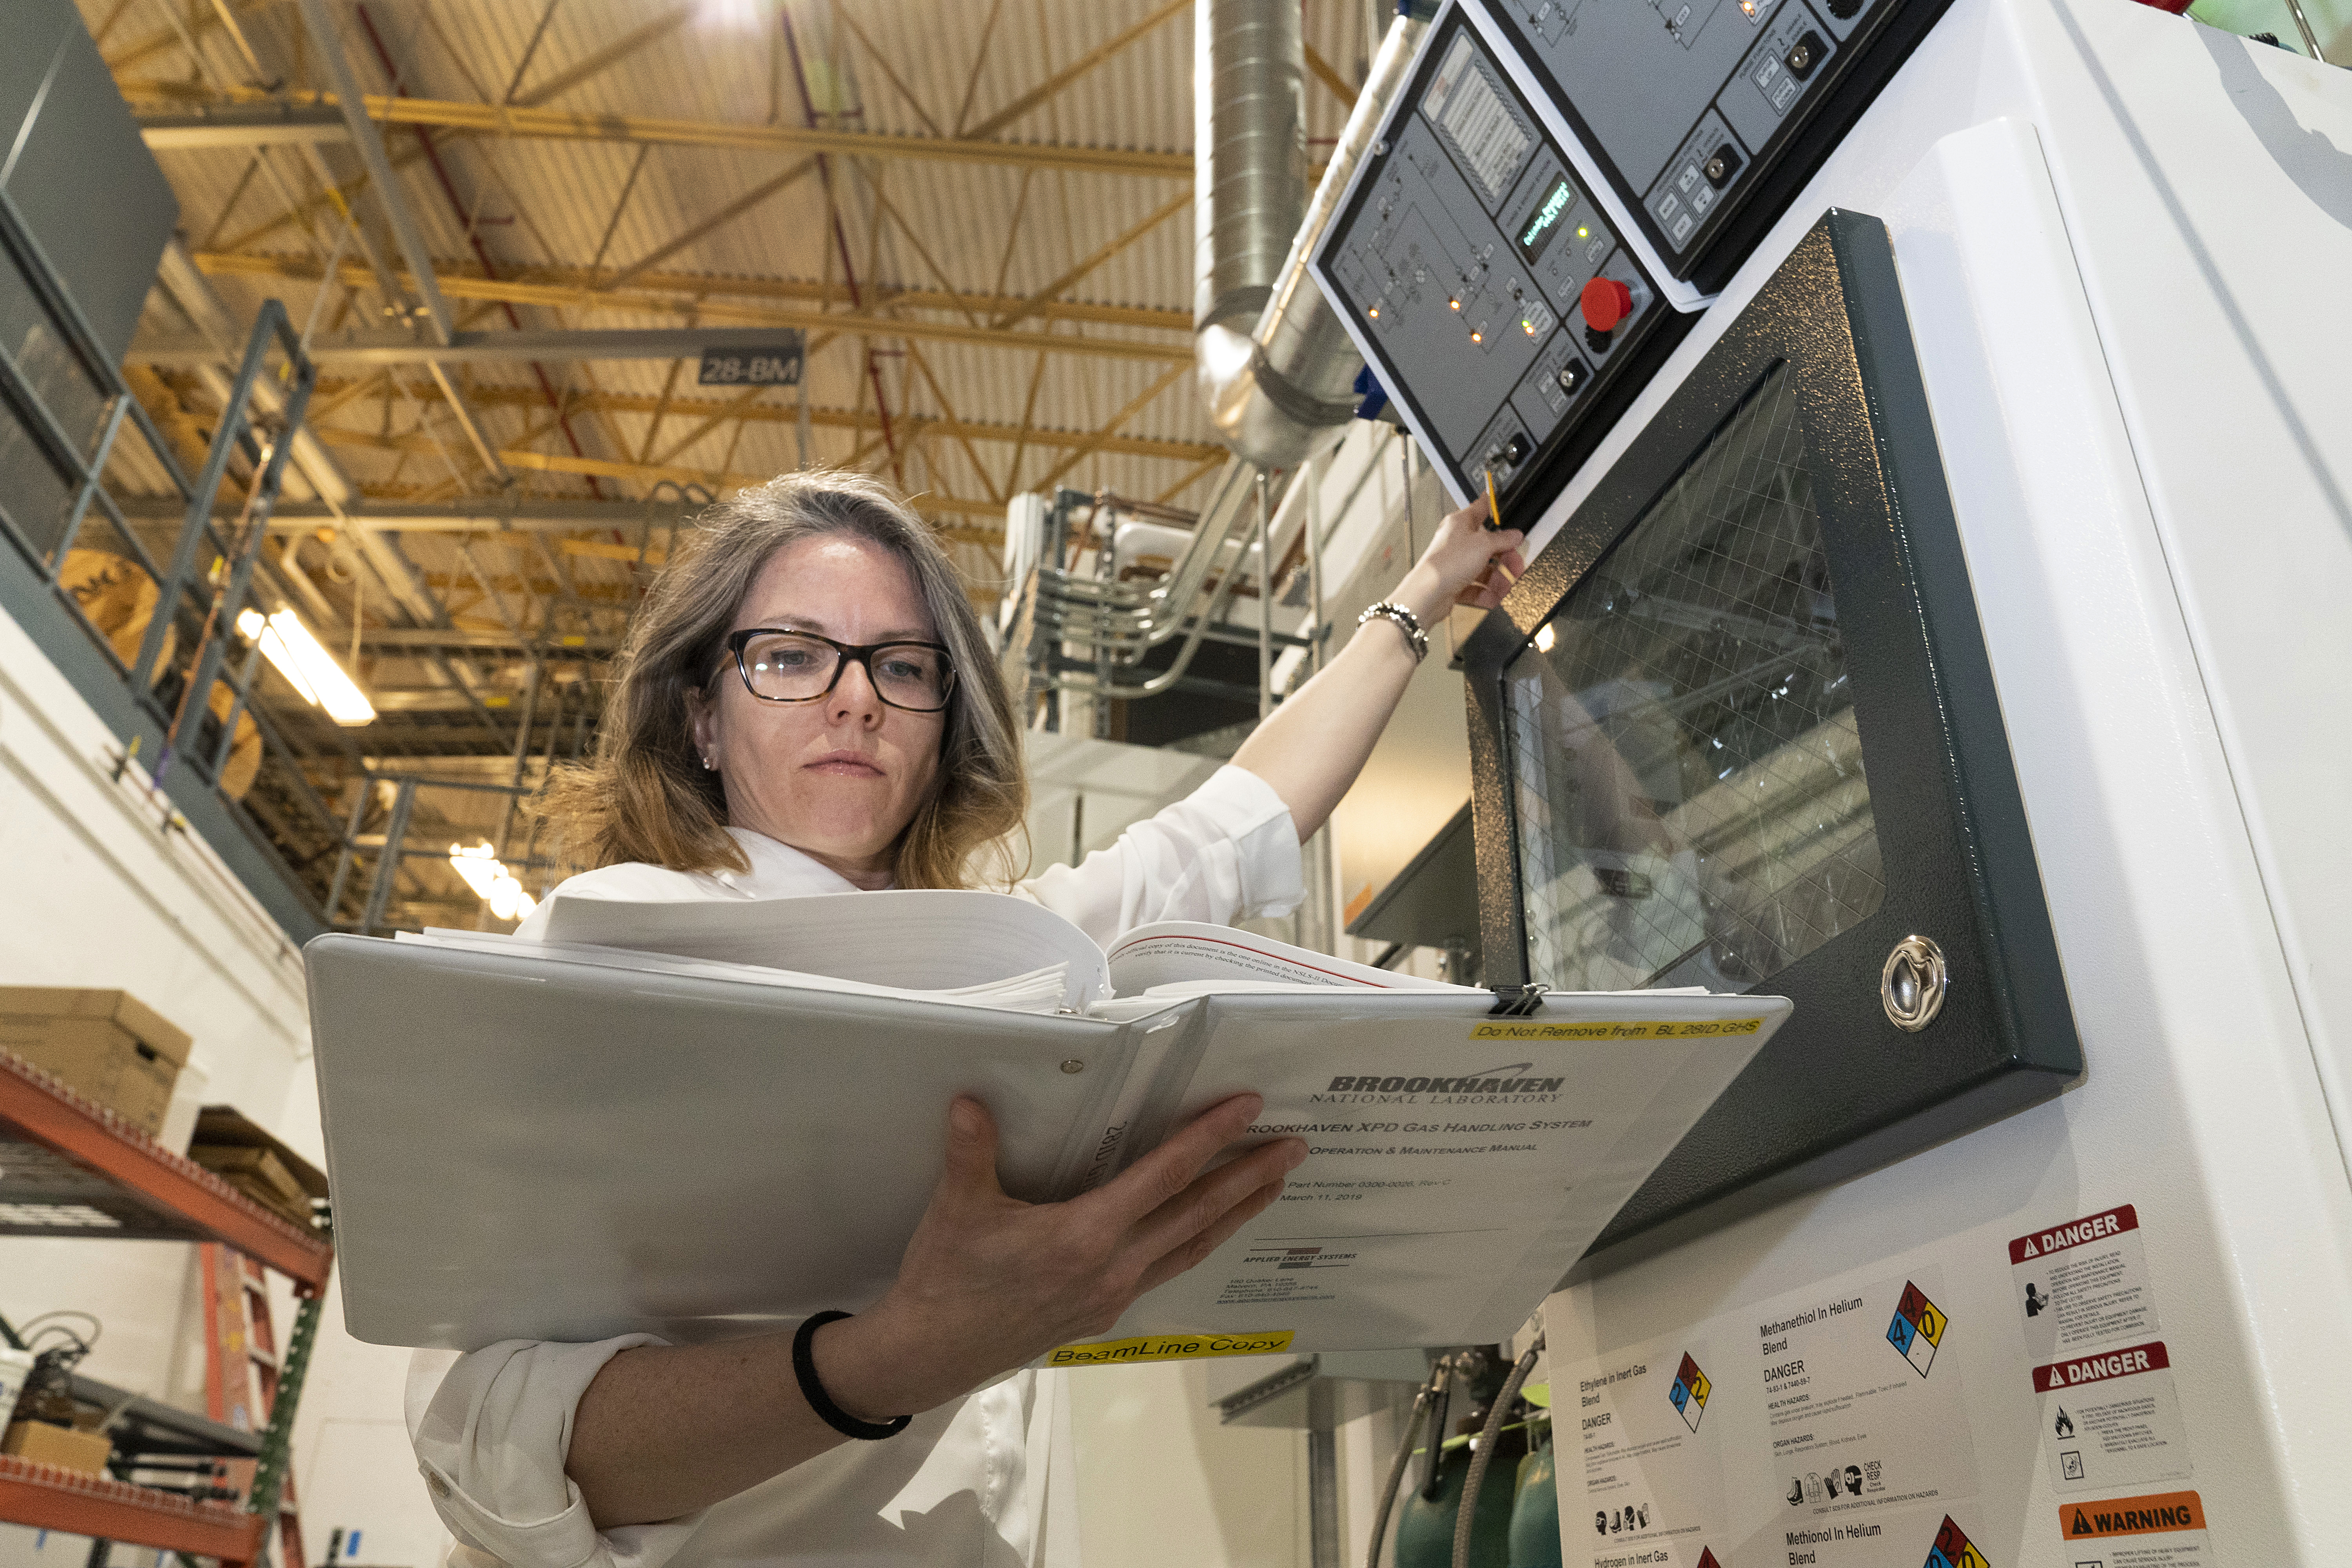 Christine Ali oversees the needs of all the laboratories at Brookhaven's National Synchrotron Light Source II, manages two large multipurpose chemistry labs, and is the system expert for several gas-handling systems that enable cutting-edge research at this facility.